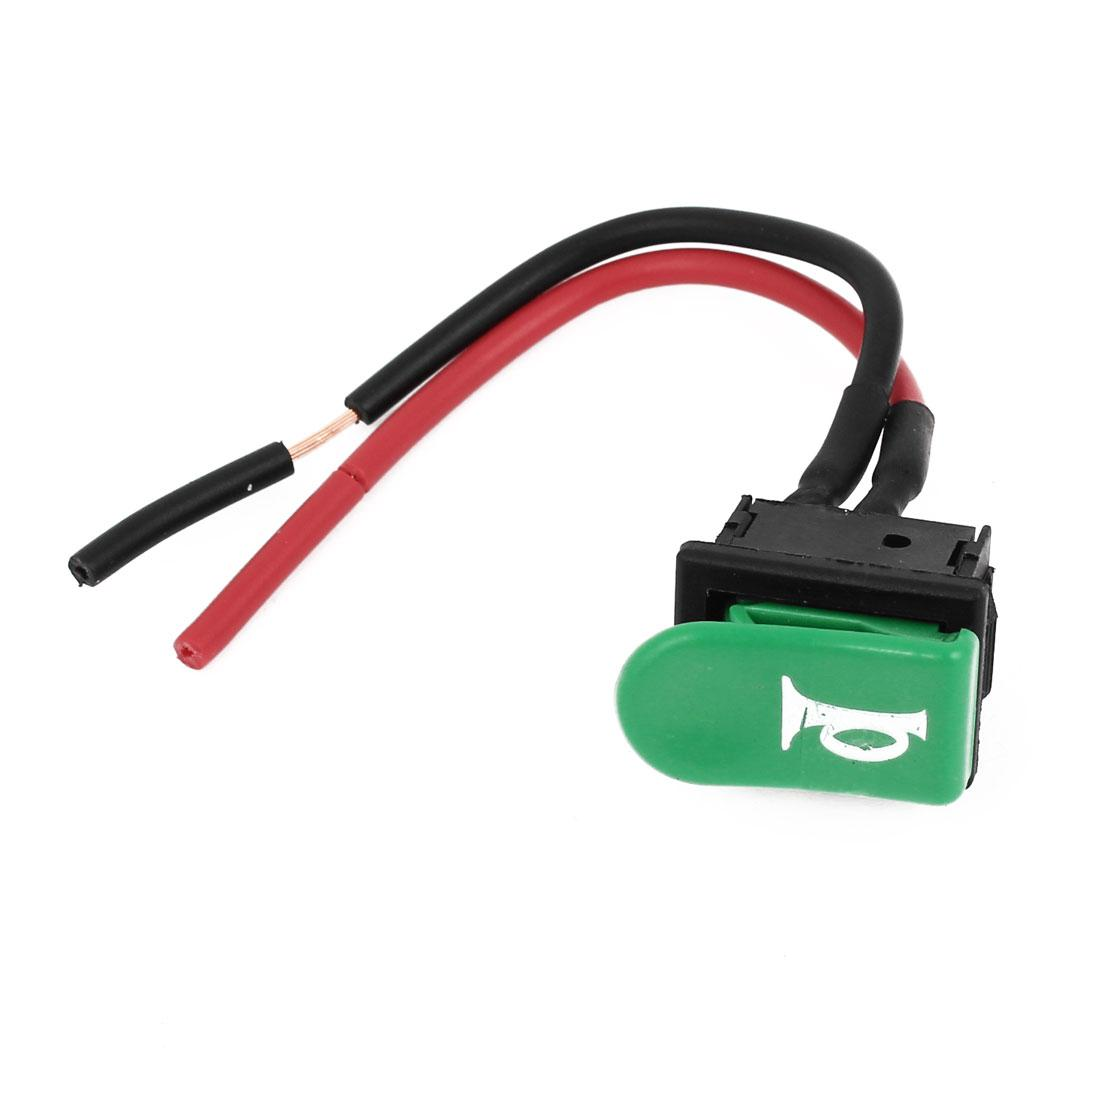 Discount spst green horn button momentary wired switch 12v for motorcycle from china dhgate com